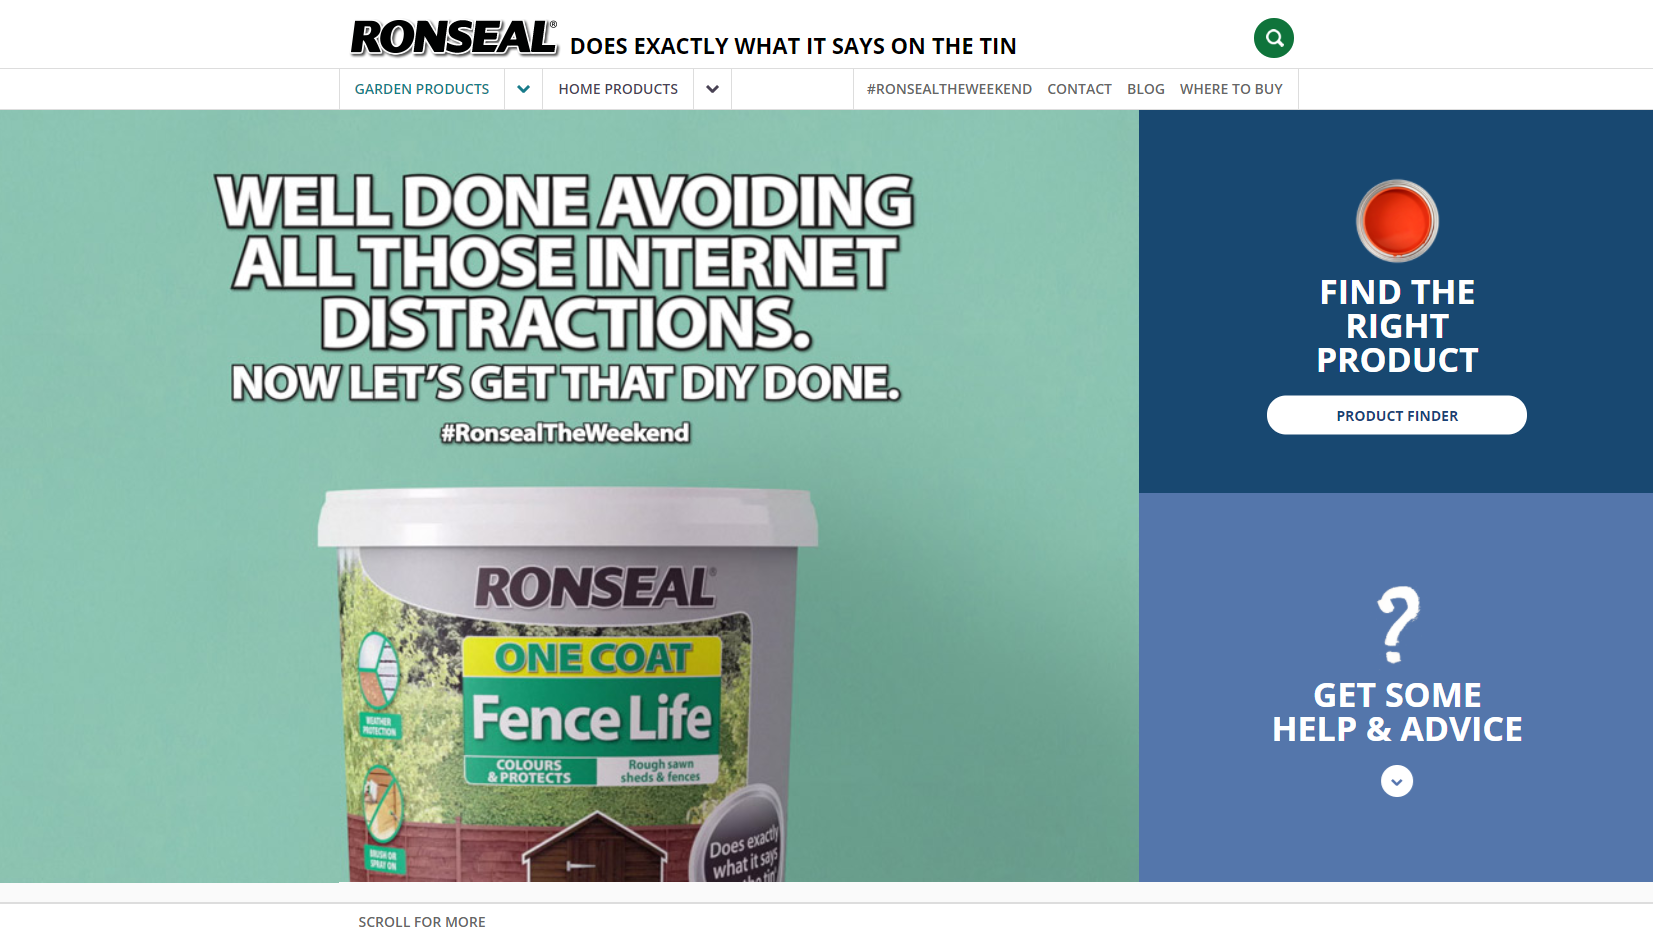 ronseal value proposition